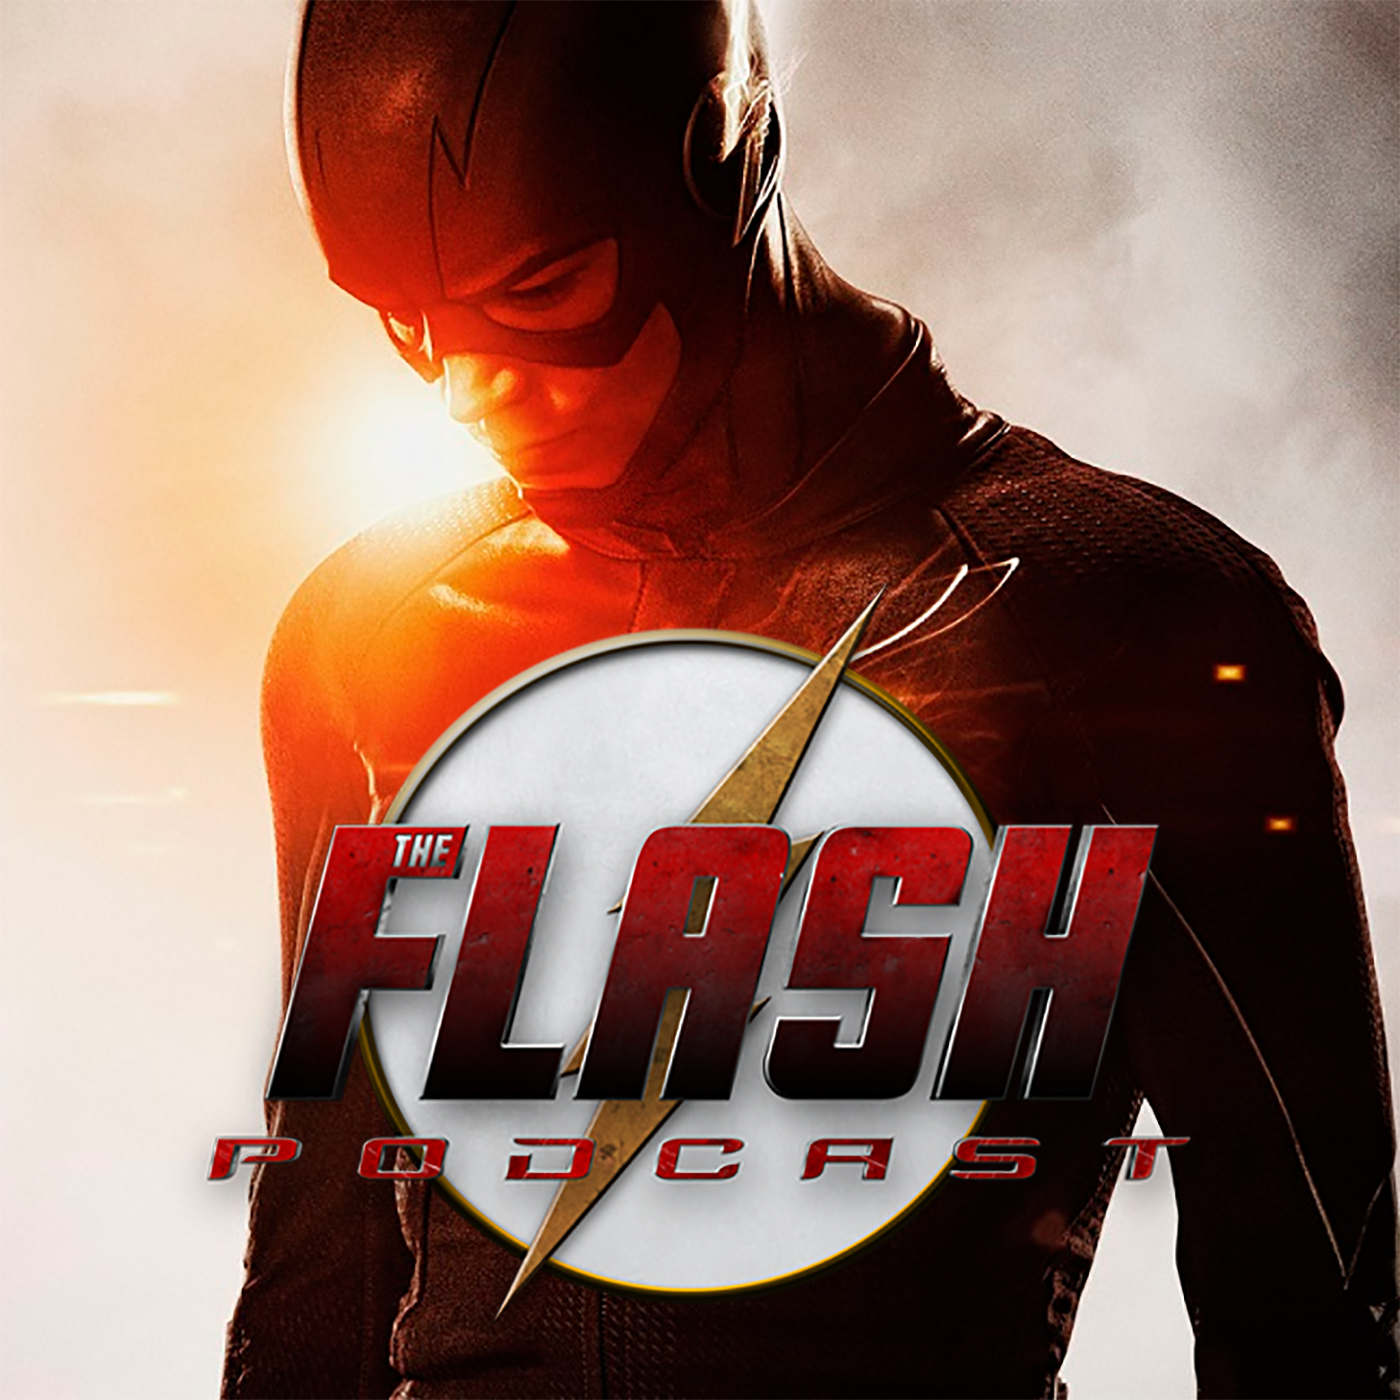 The Flash Podcast Season 1.5 – Arrow S3/The Flash S1 Crossovers